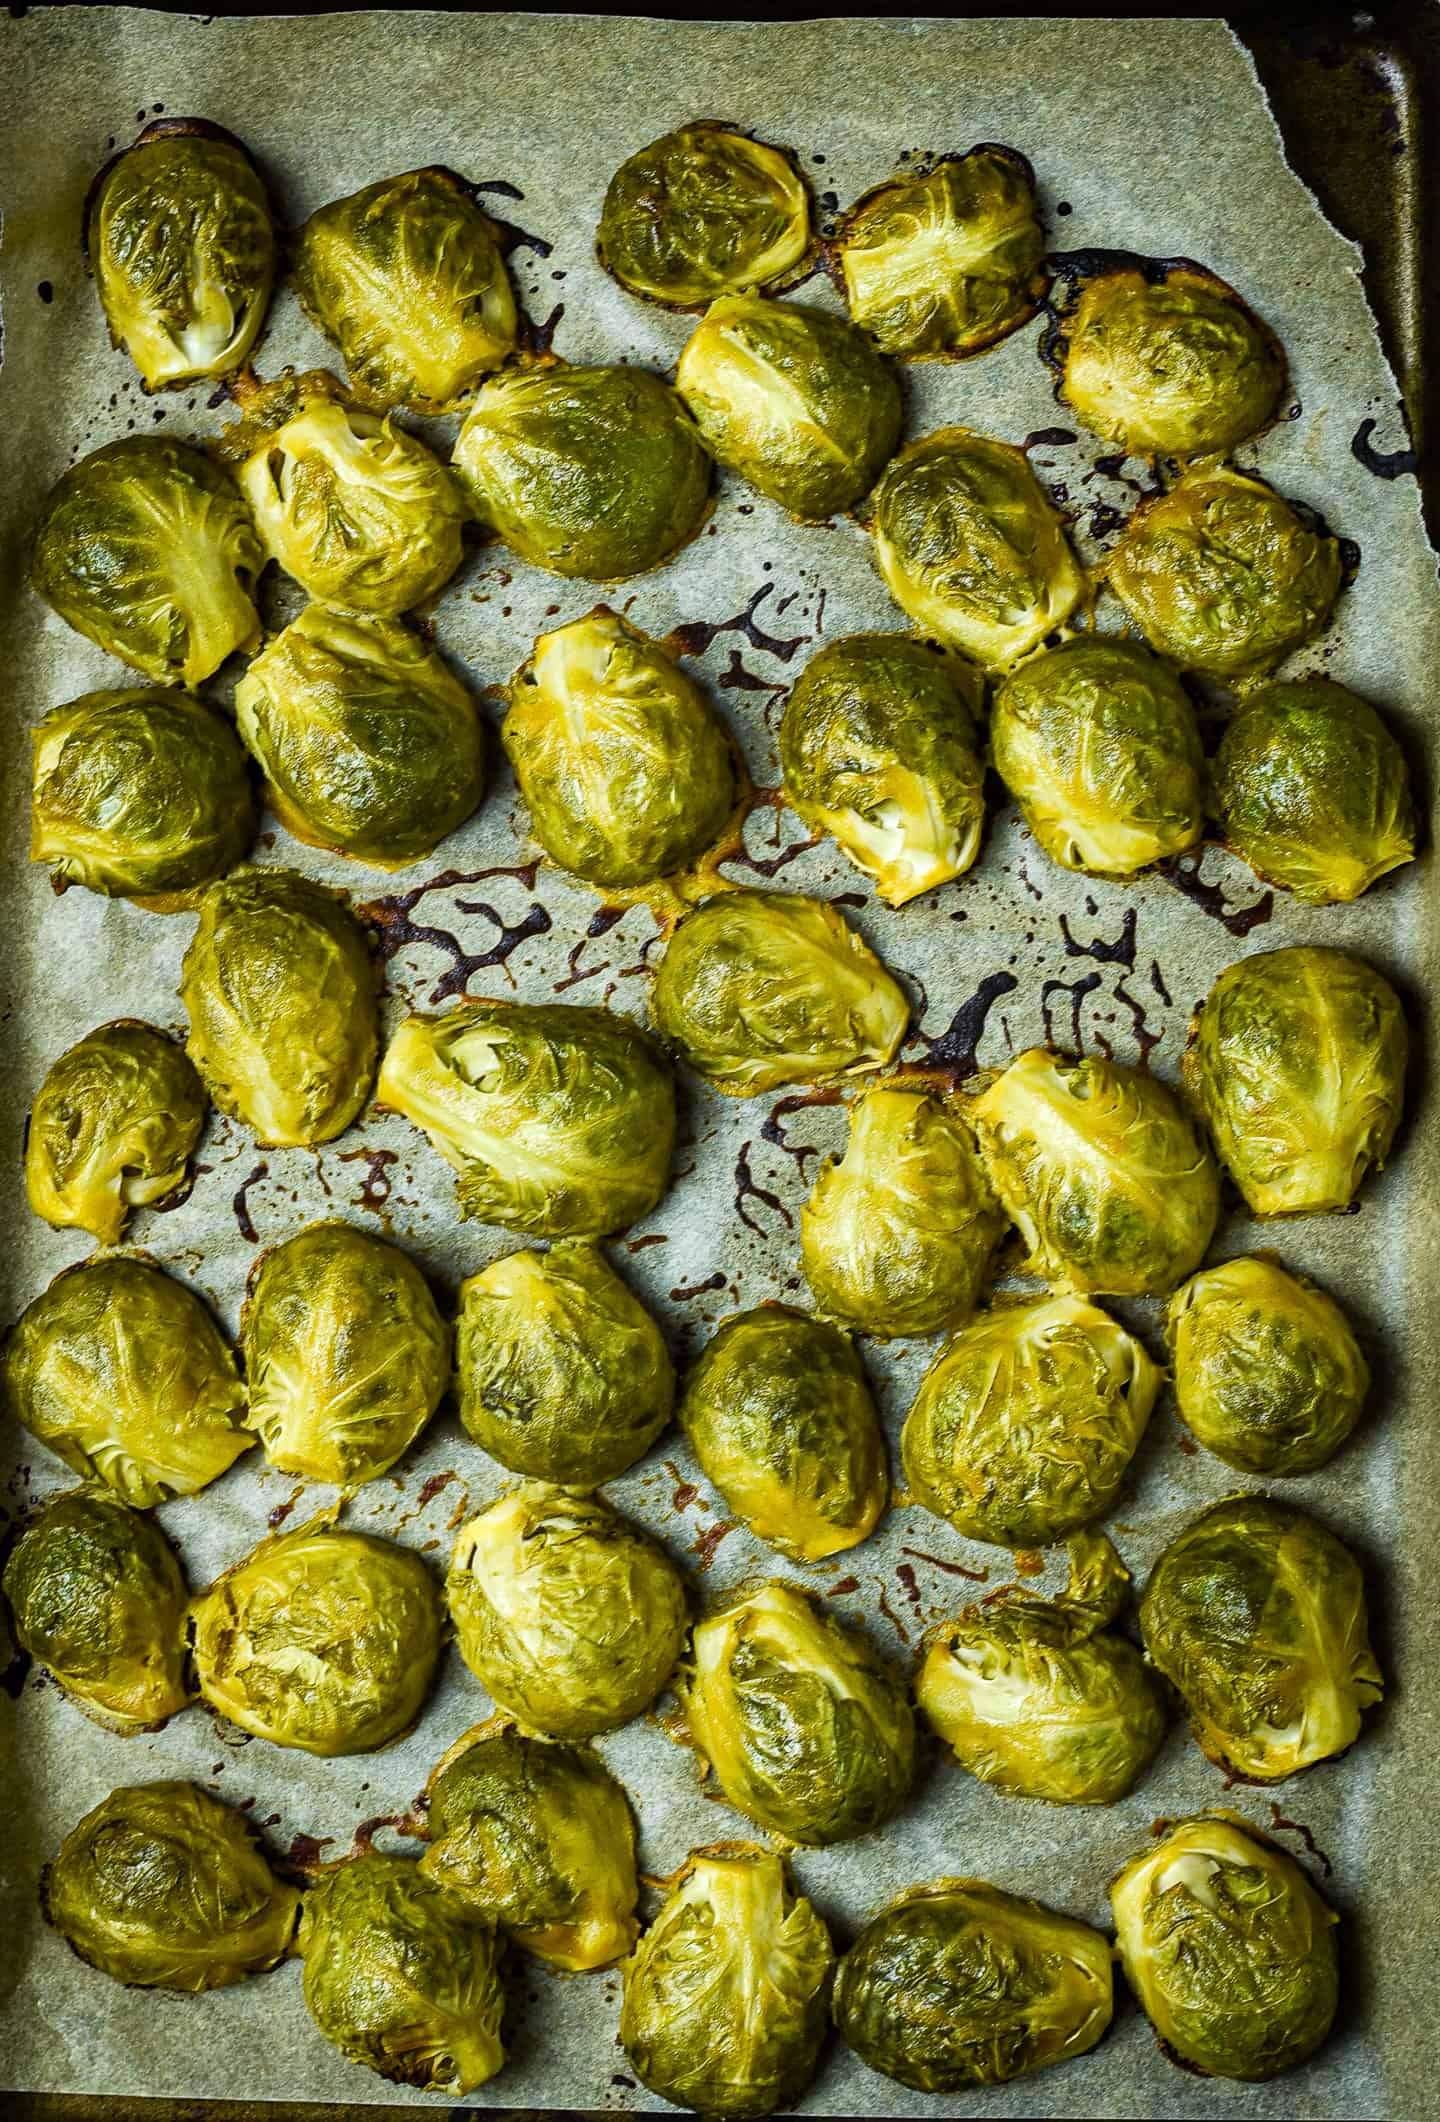 Roasted Brussels sprouts on baking sheet.